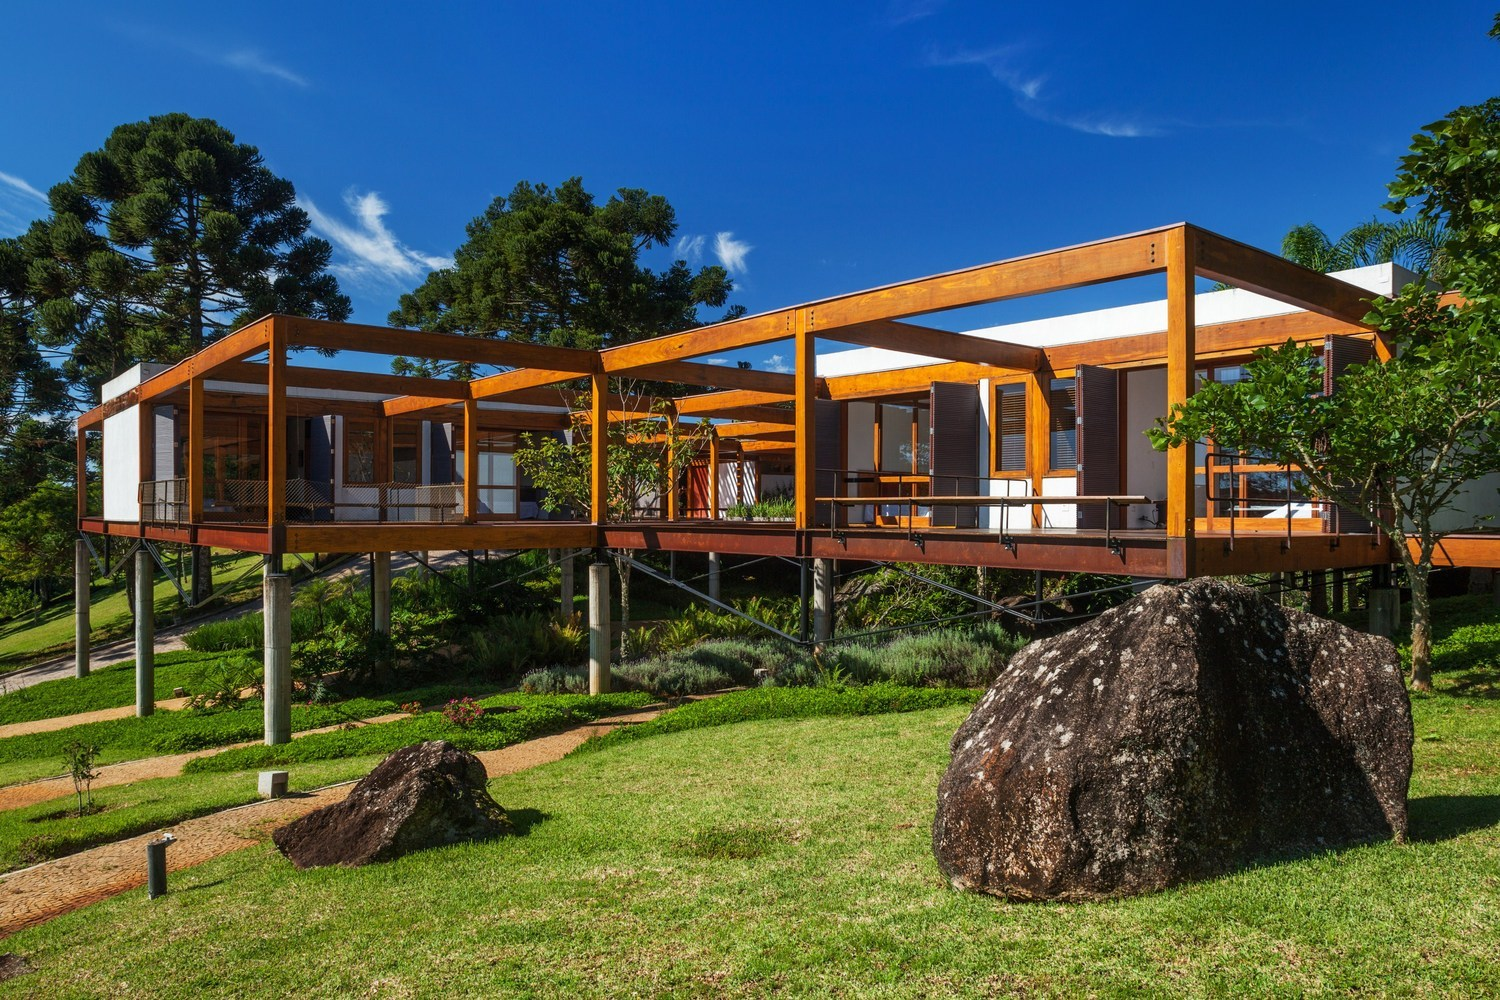 How Inverted King Post Trusses Allow for Large, Elegant Open Spaces